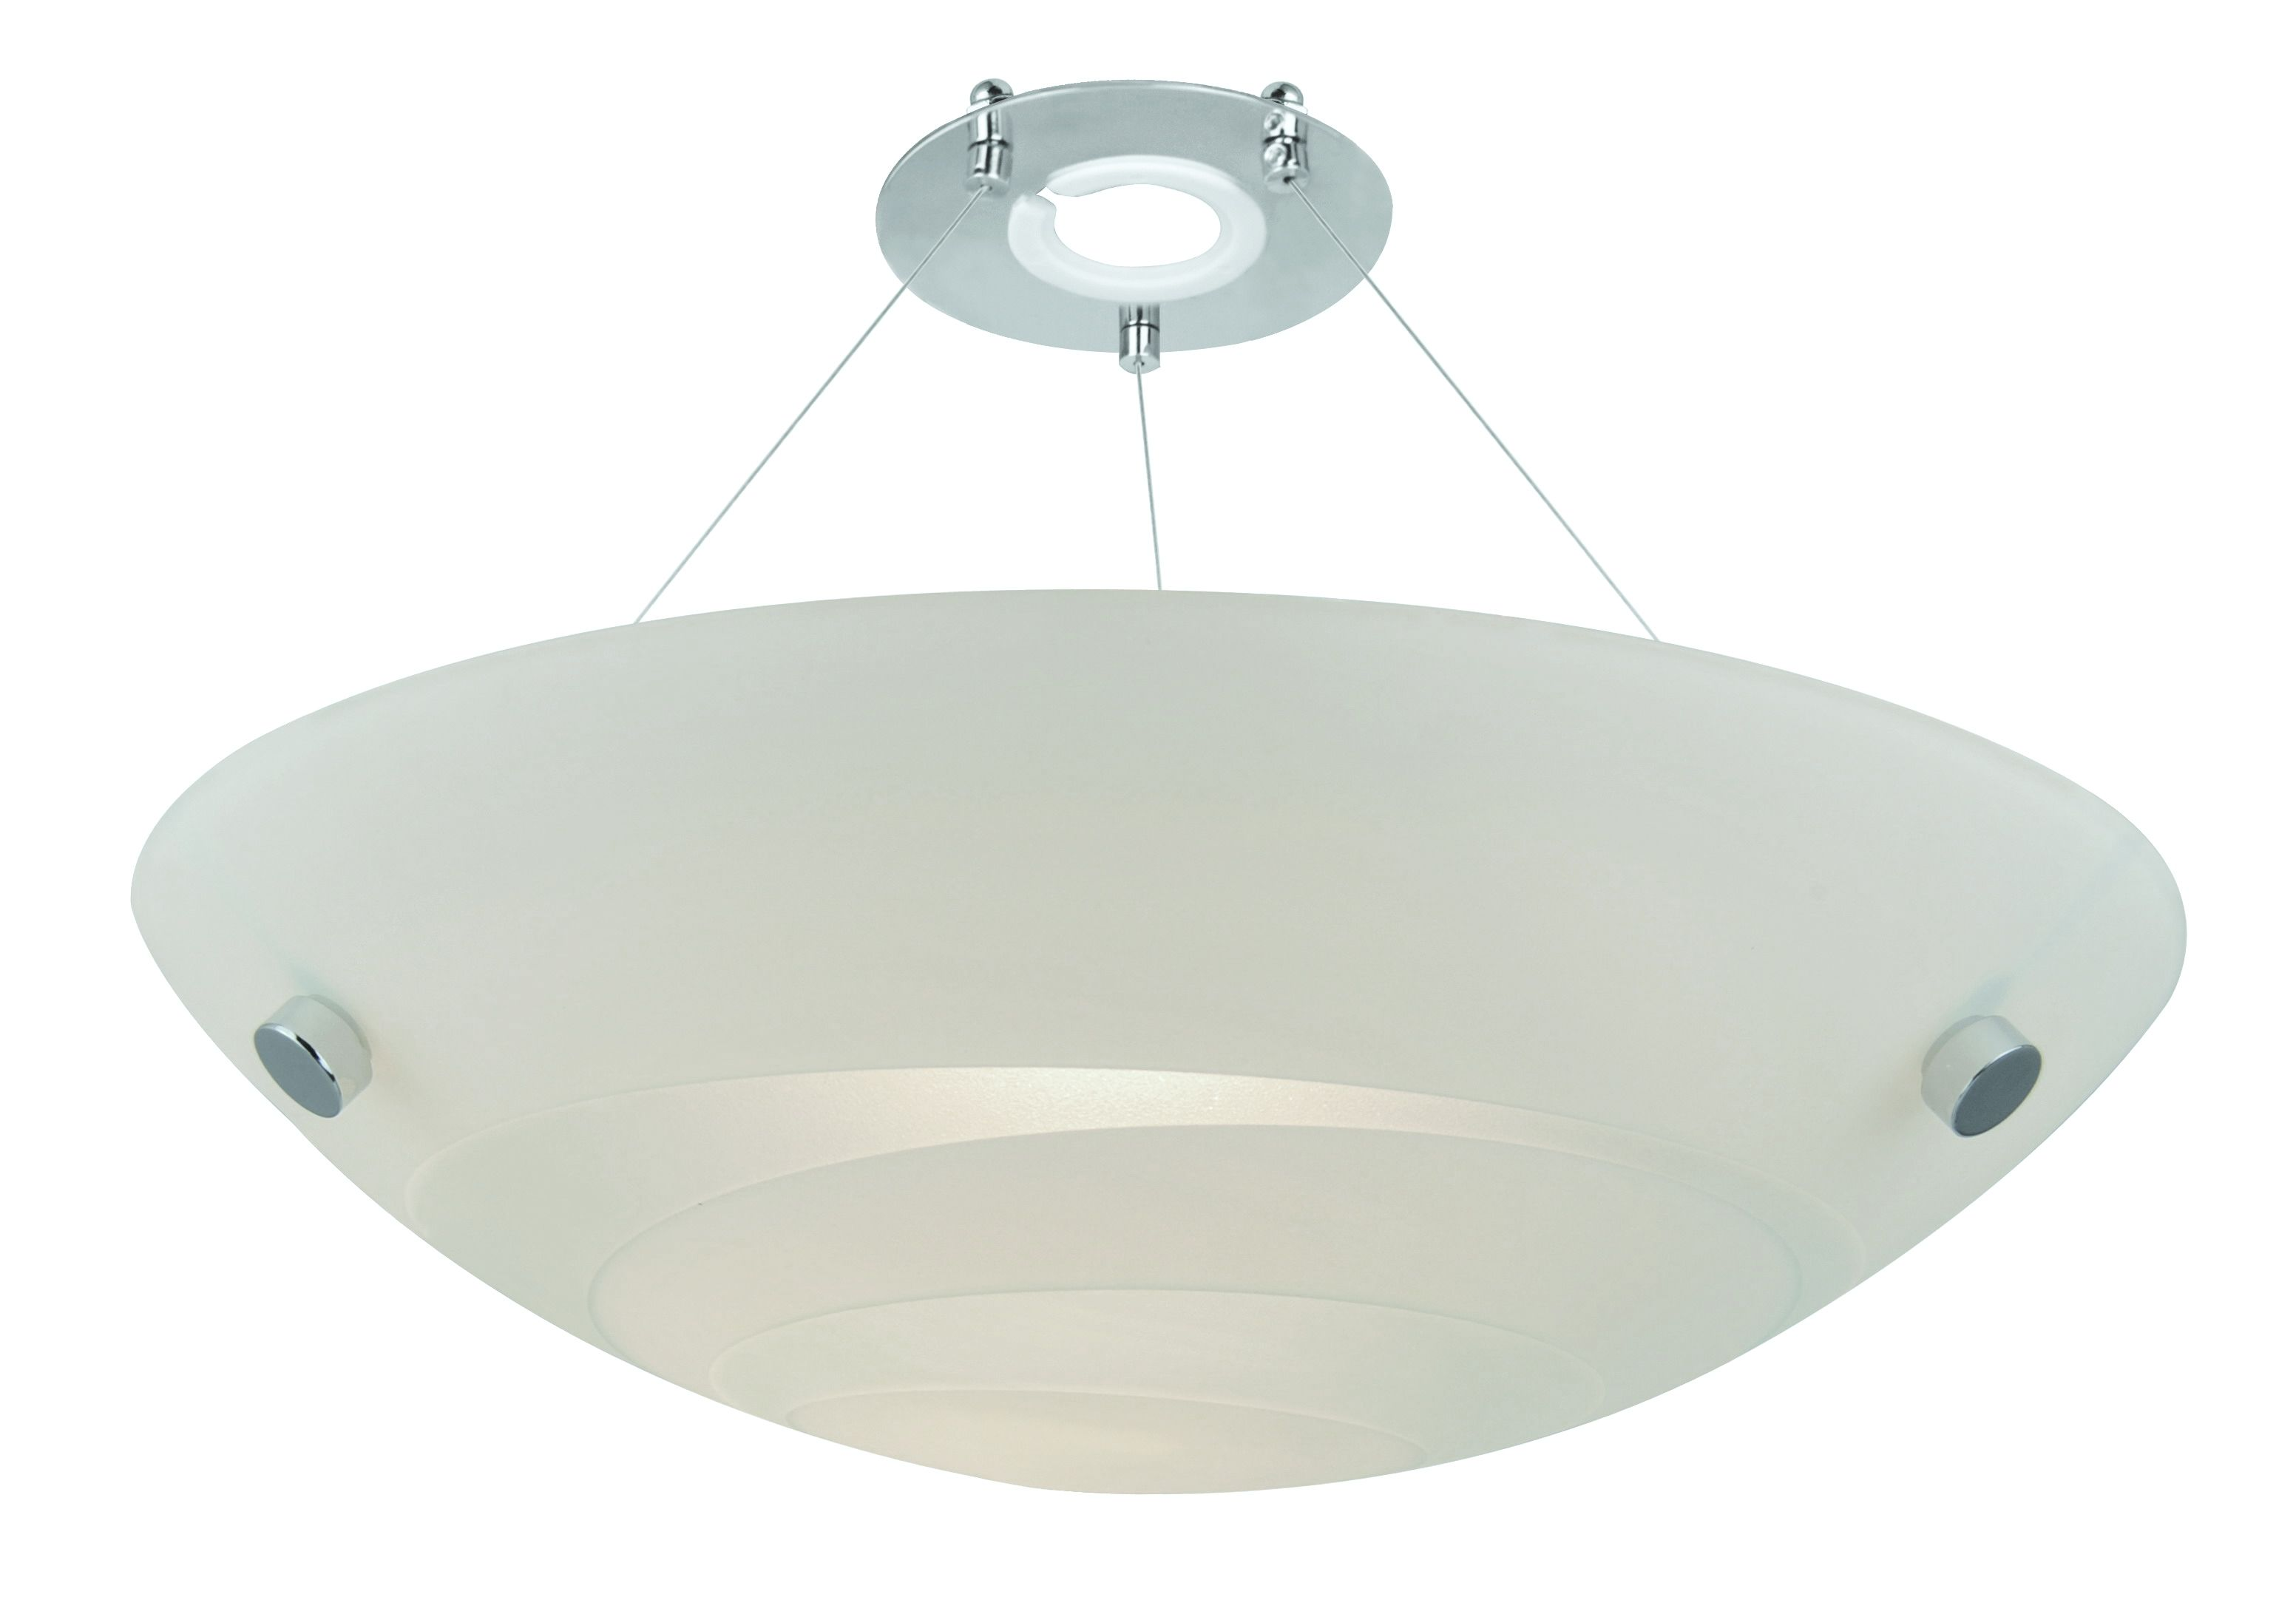 Lighting shades ceilings lighting shades ceilings e lodzinfofo lighting shades ceilings colours alta white frosted swirl uplighter light shade d300mm mozeypictures Choice Image